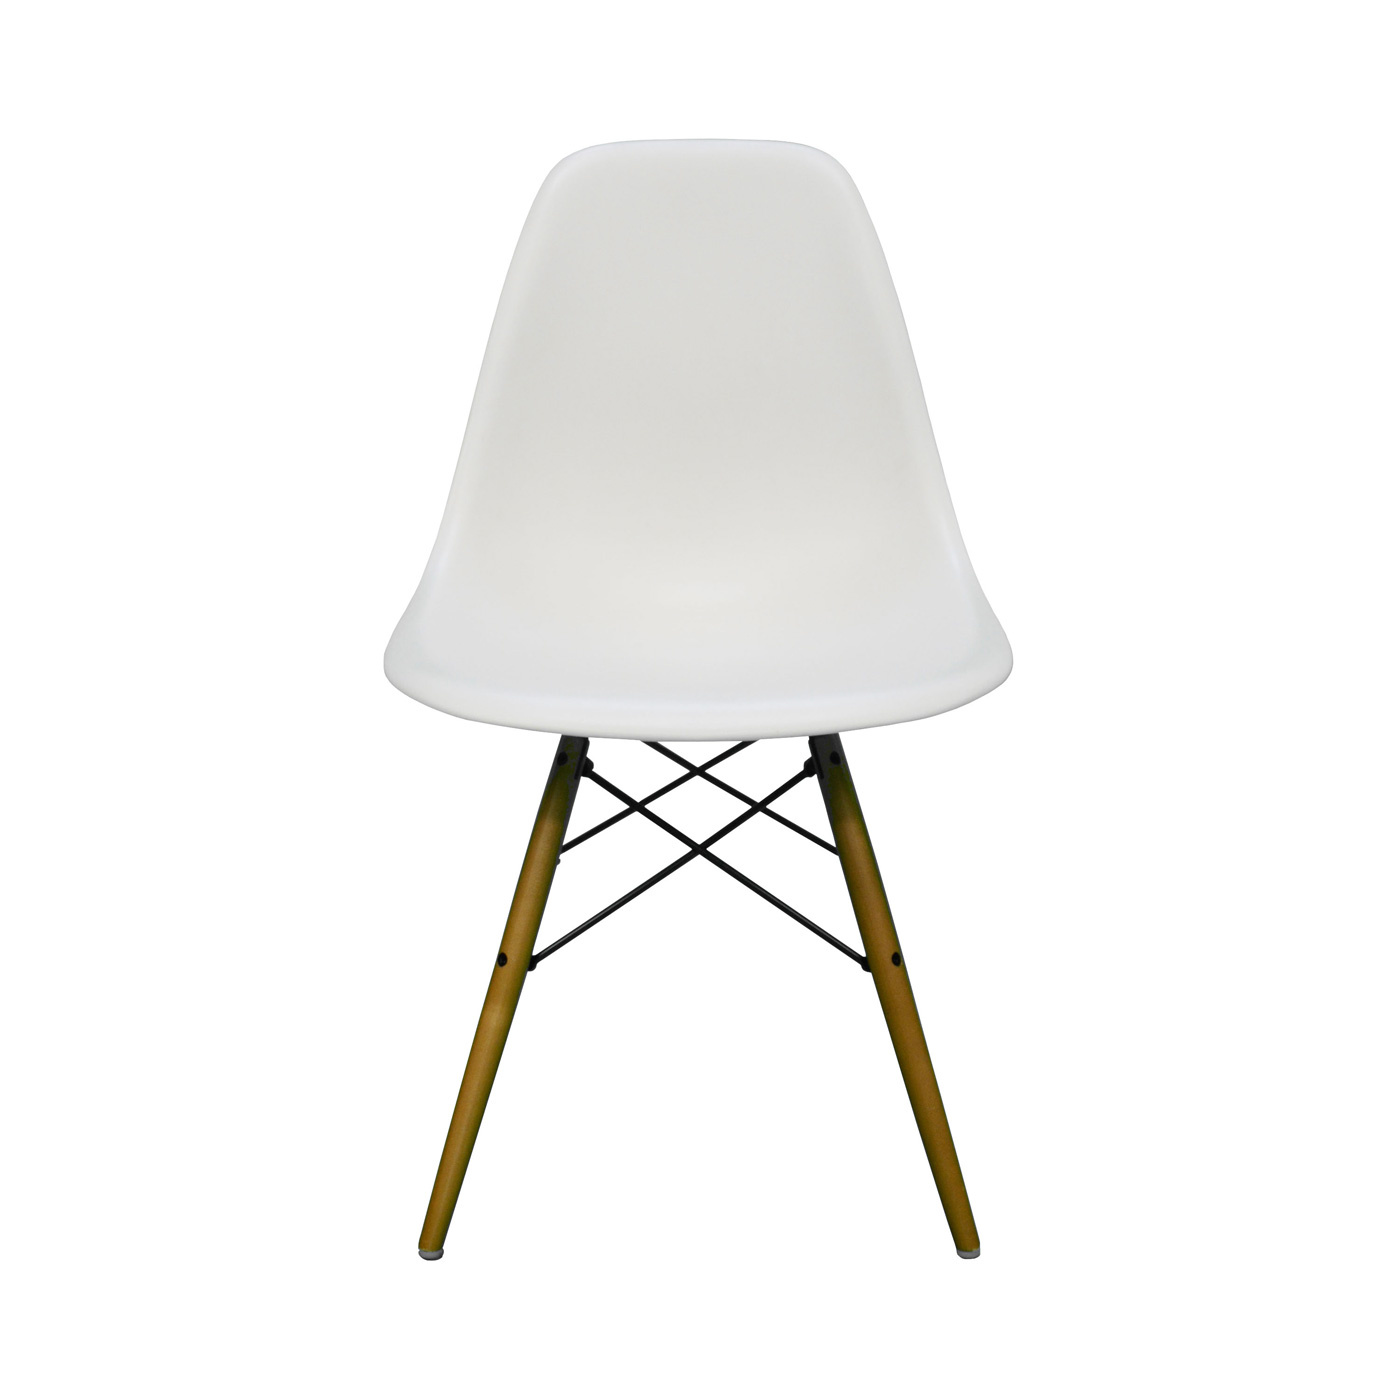 Vitra Eames Plastic Side Chair Dsw Vitra Eames Plastic Side Chair Dsw Klingenberg